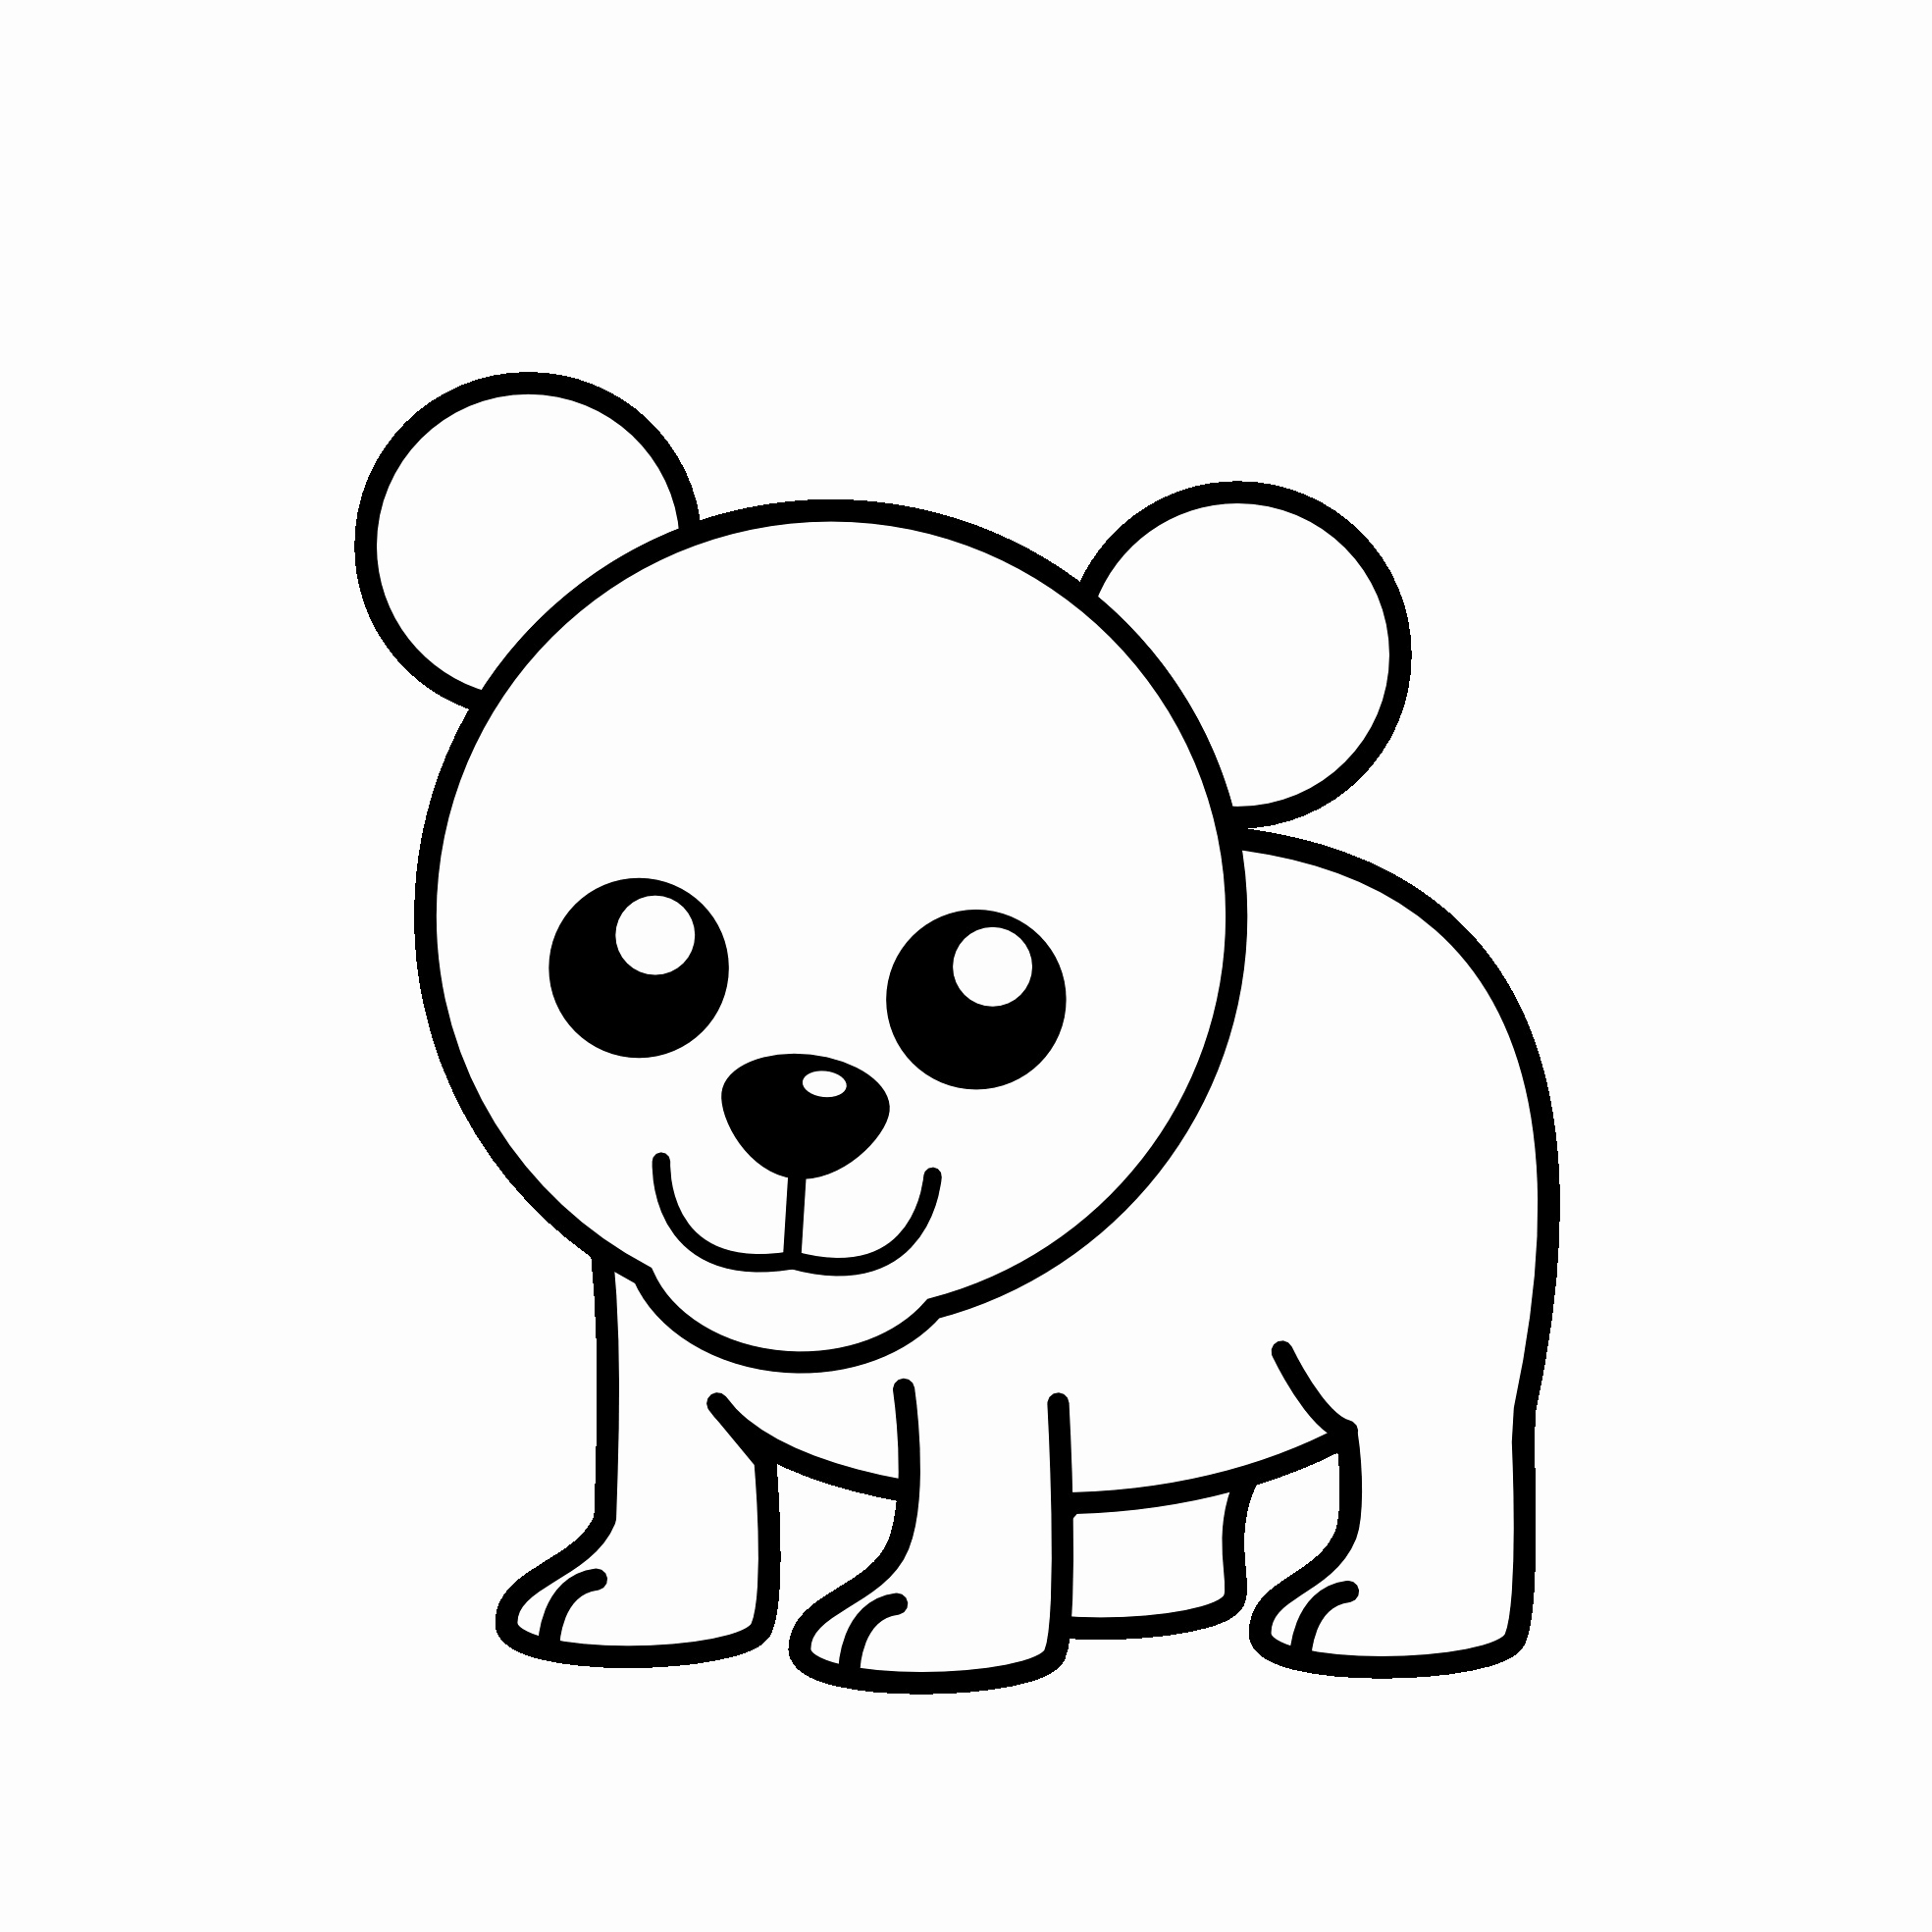 bear cub coloring pages bear cub coloring pages at getdrawings free download bear cub pages coloring